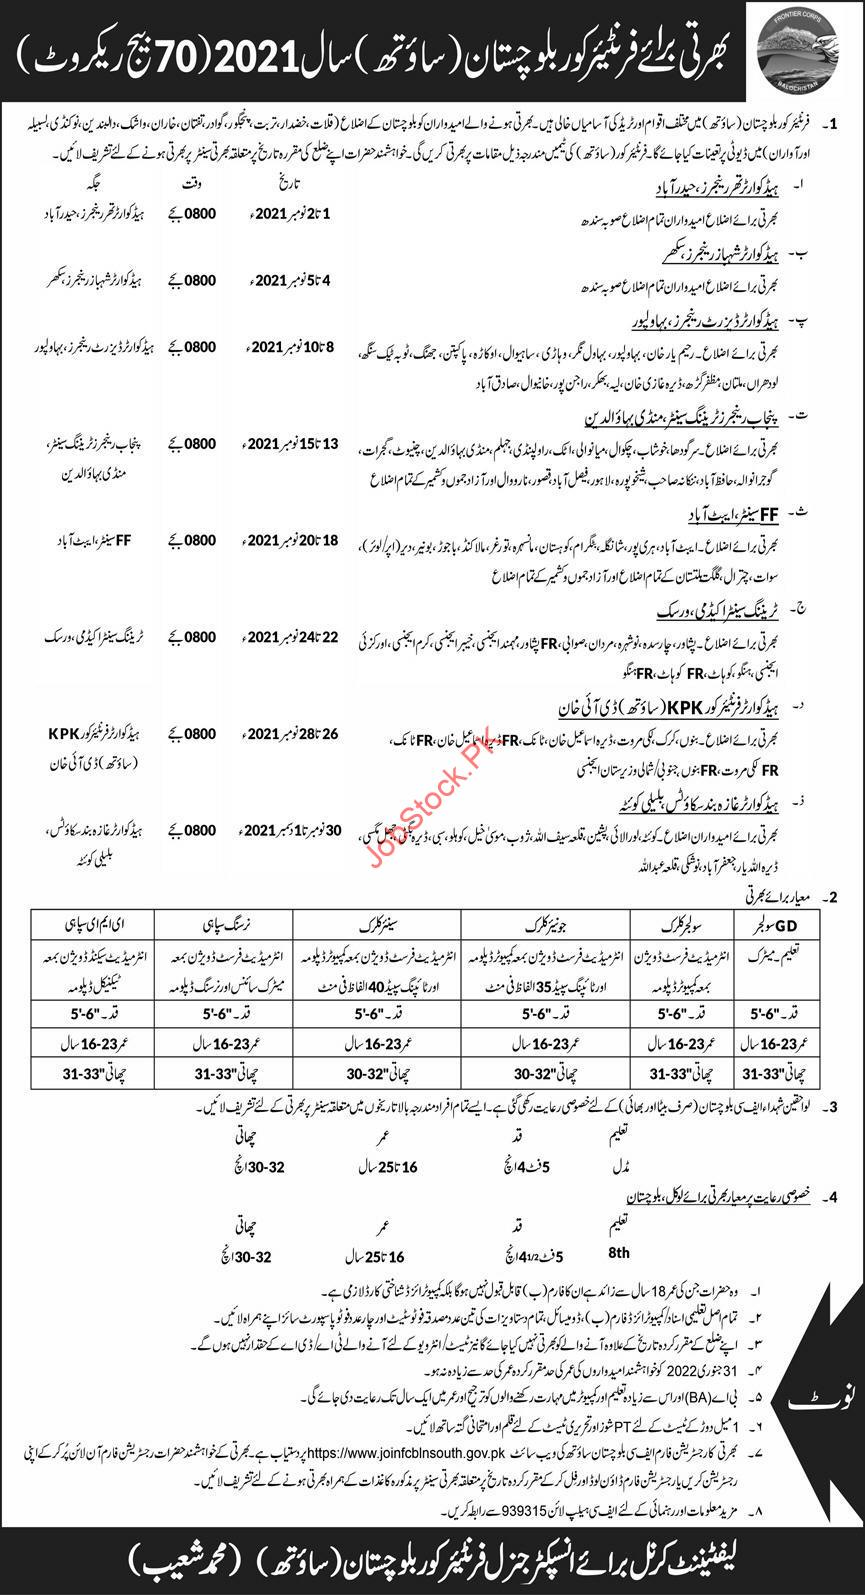 Frontier Corps Balochistan South 70 Recruitment Bench 2021 Apply Online www.joinfcblnsouth.gov.pk Jobs Latest